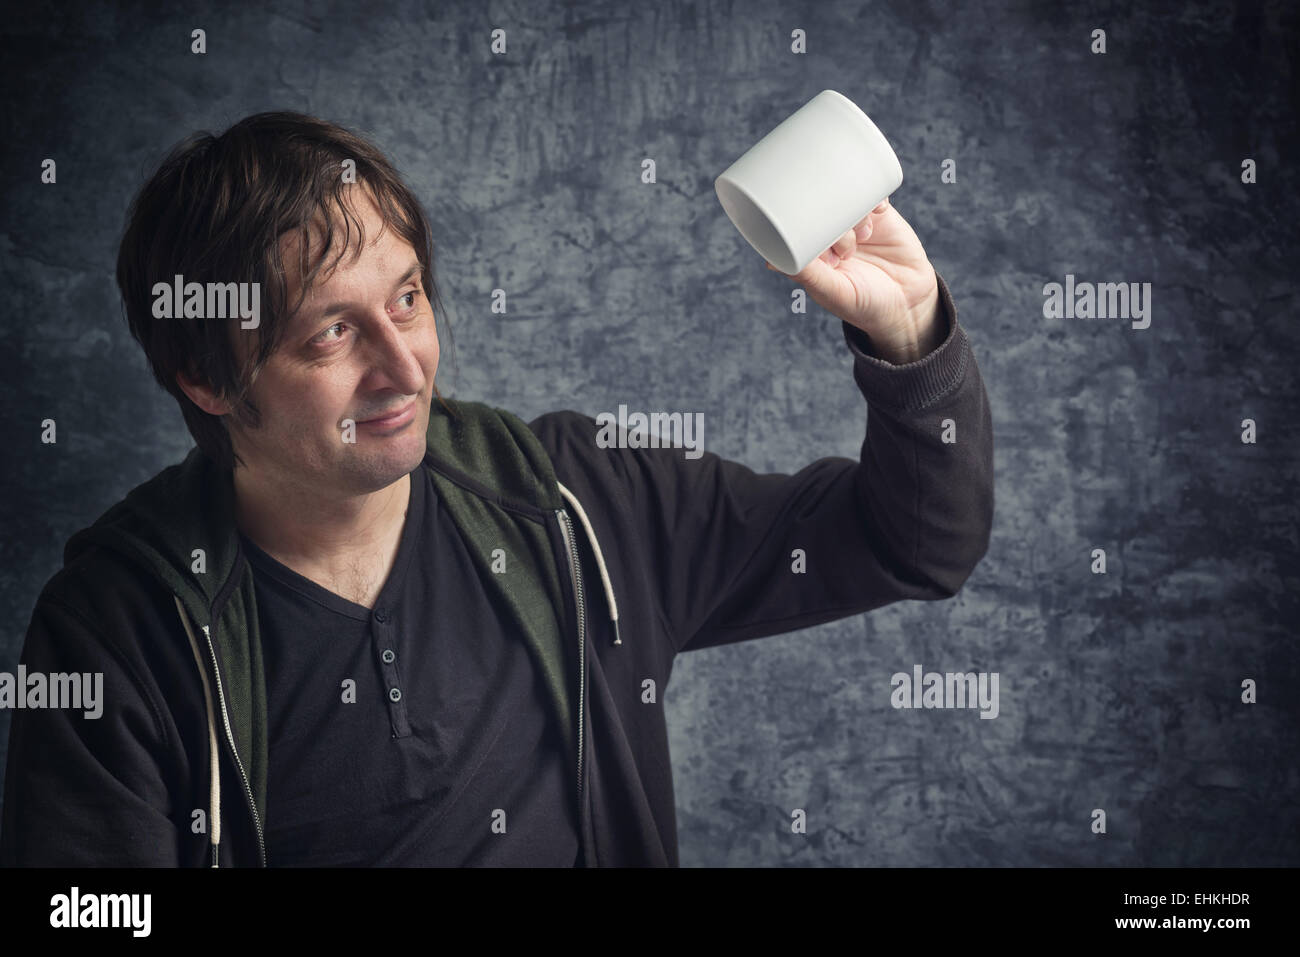 Disappointed Man Looking at Empty Cup, Concept of Failure of Expectations. - Stock Image